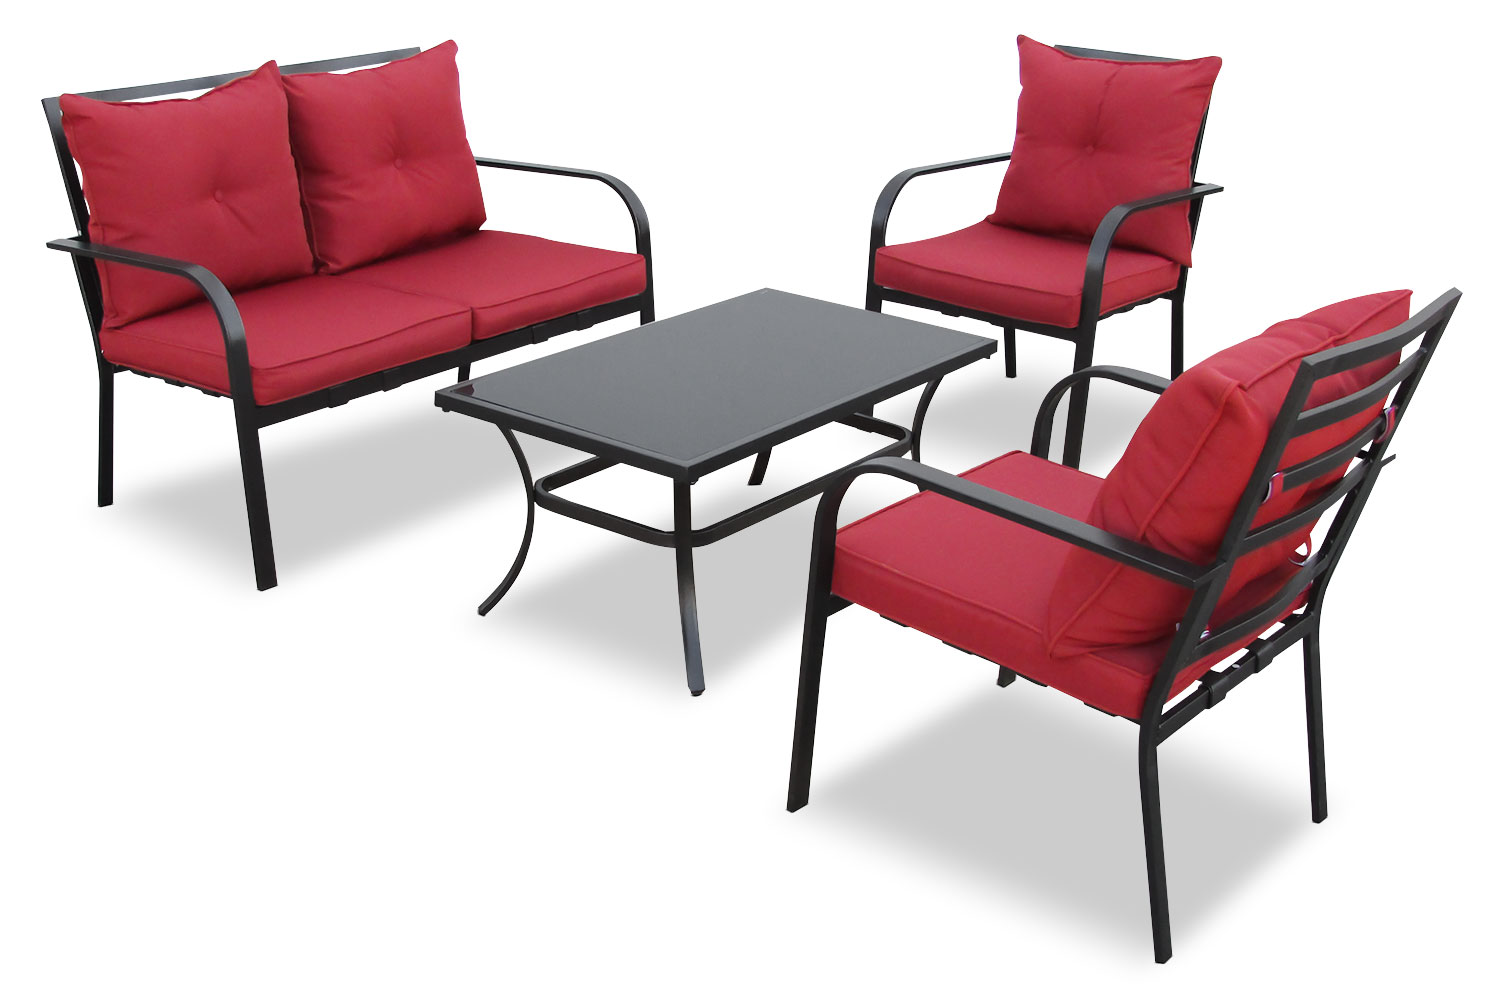 CorLiving 4-Piece Conversation Set – Red